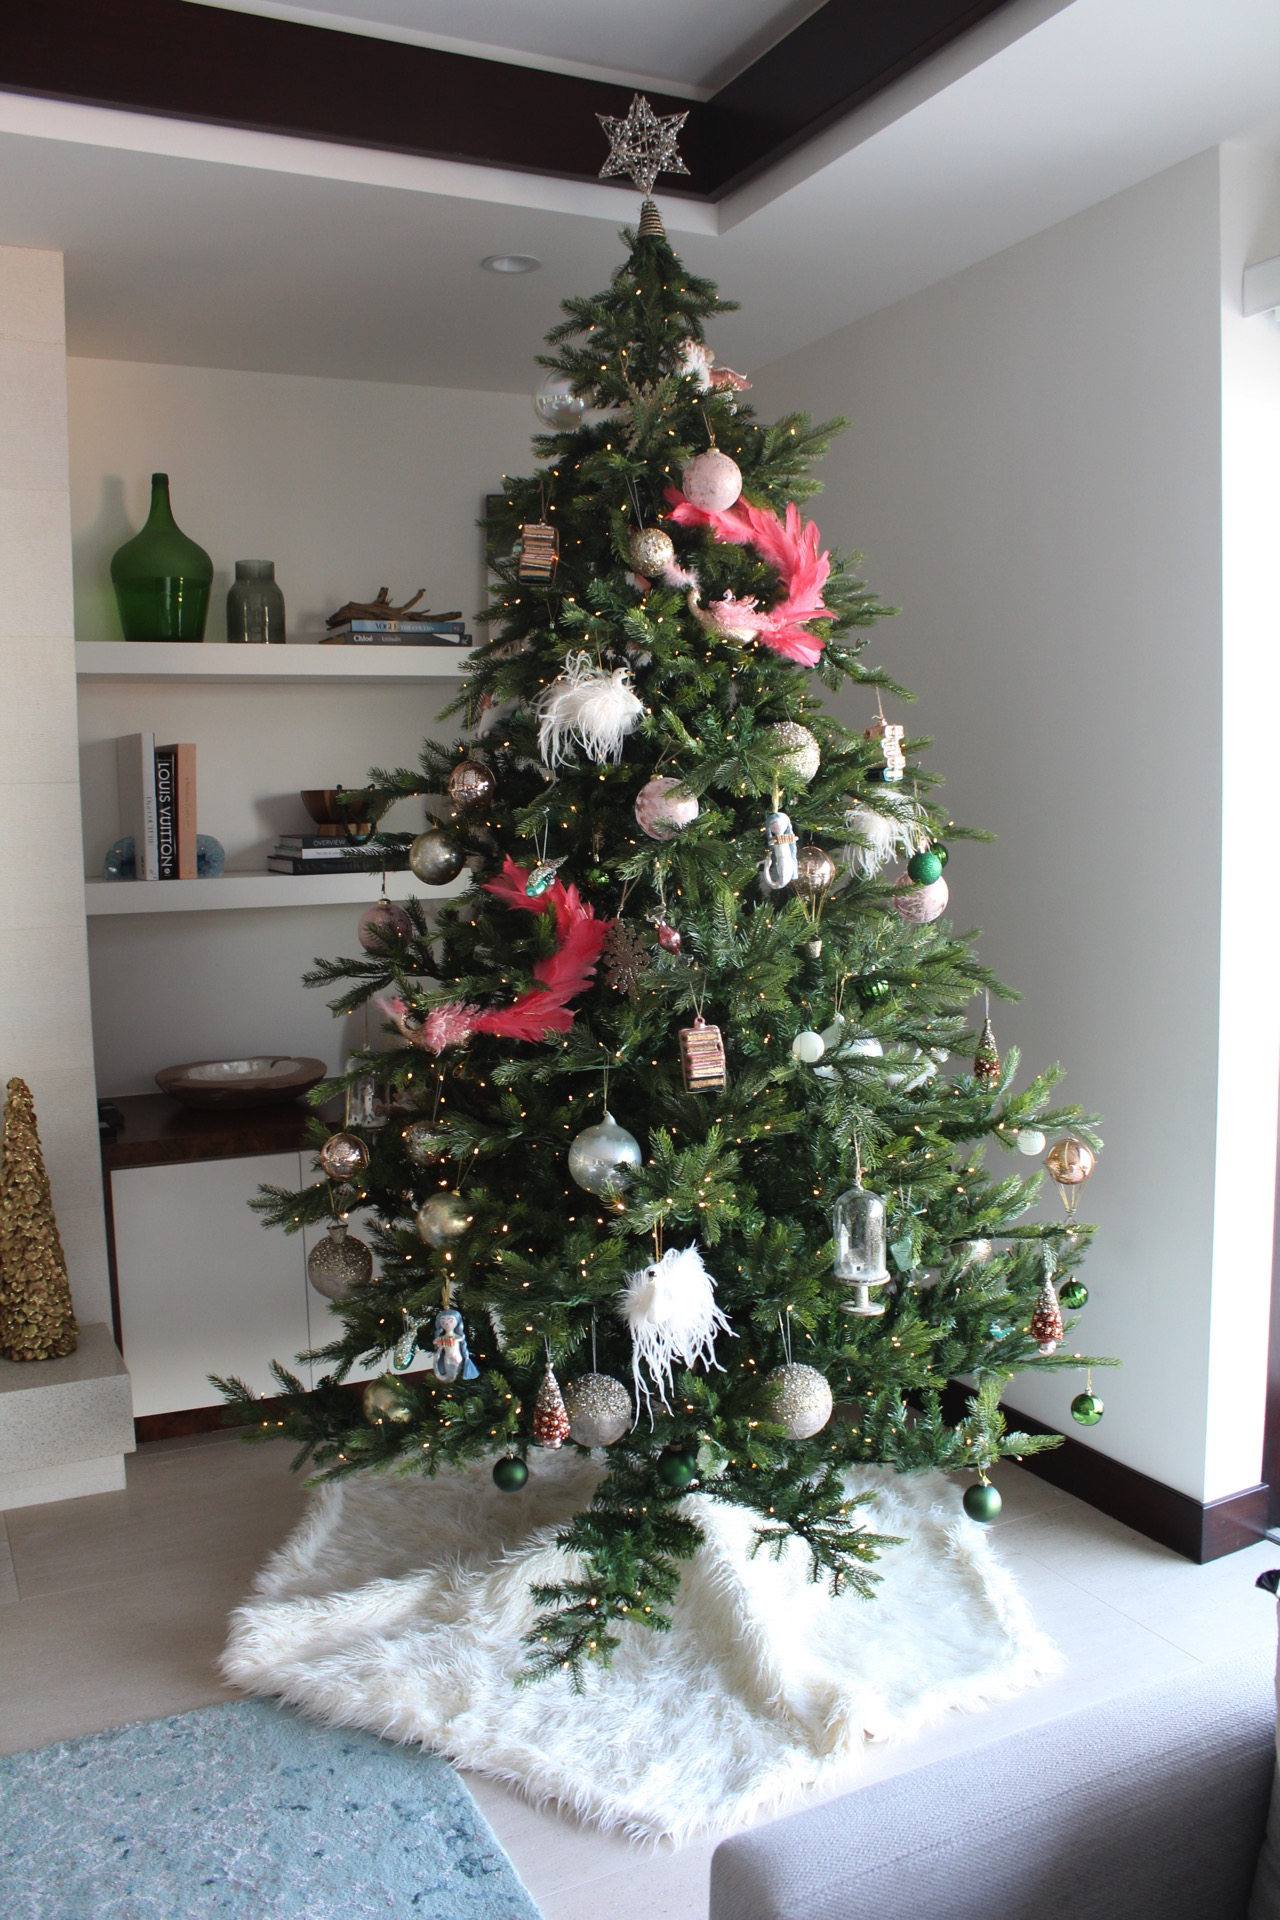 Christmas Decor December Holdiday Home Decor Dkw Styling